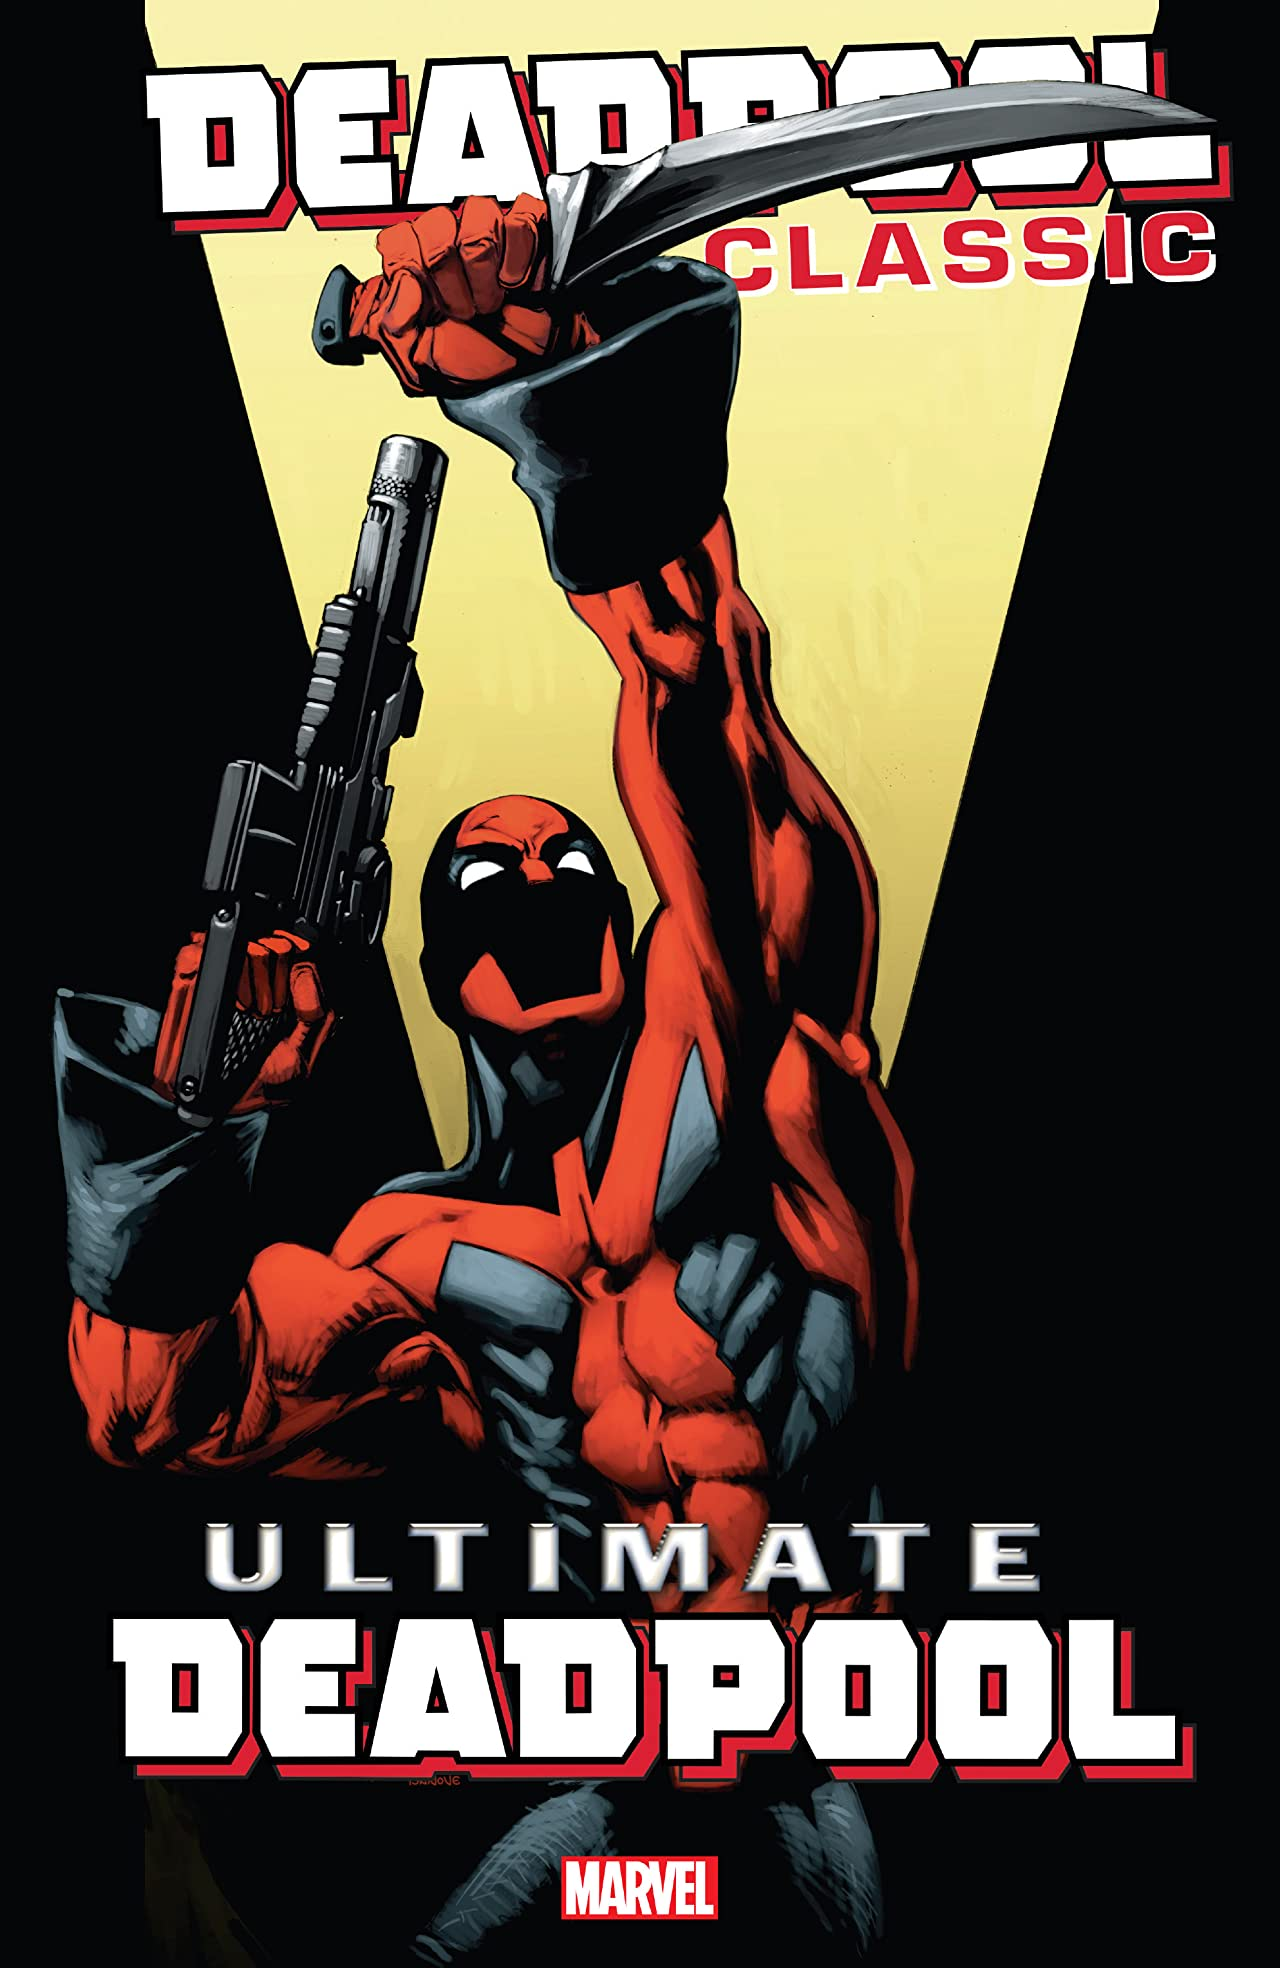 Deadpool Classic Vol. 20: Ultimate Deadpool